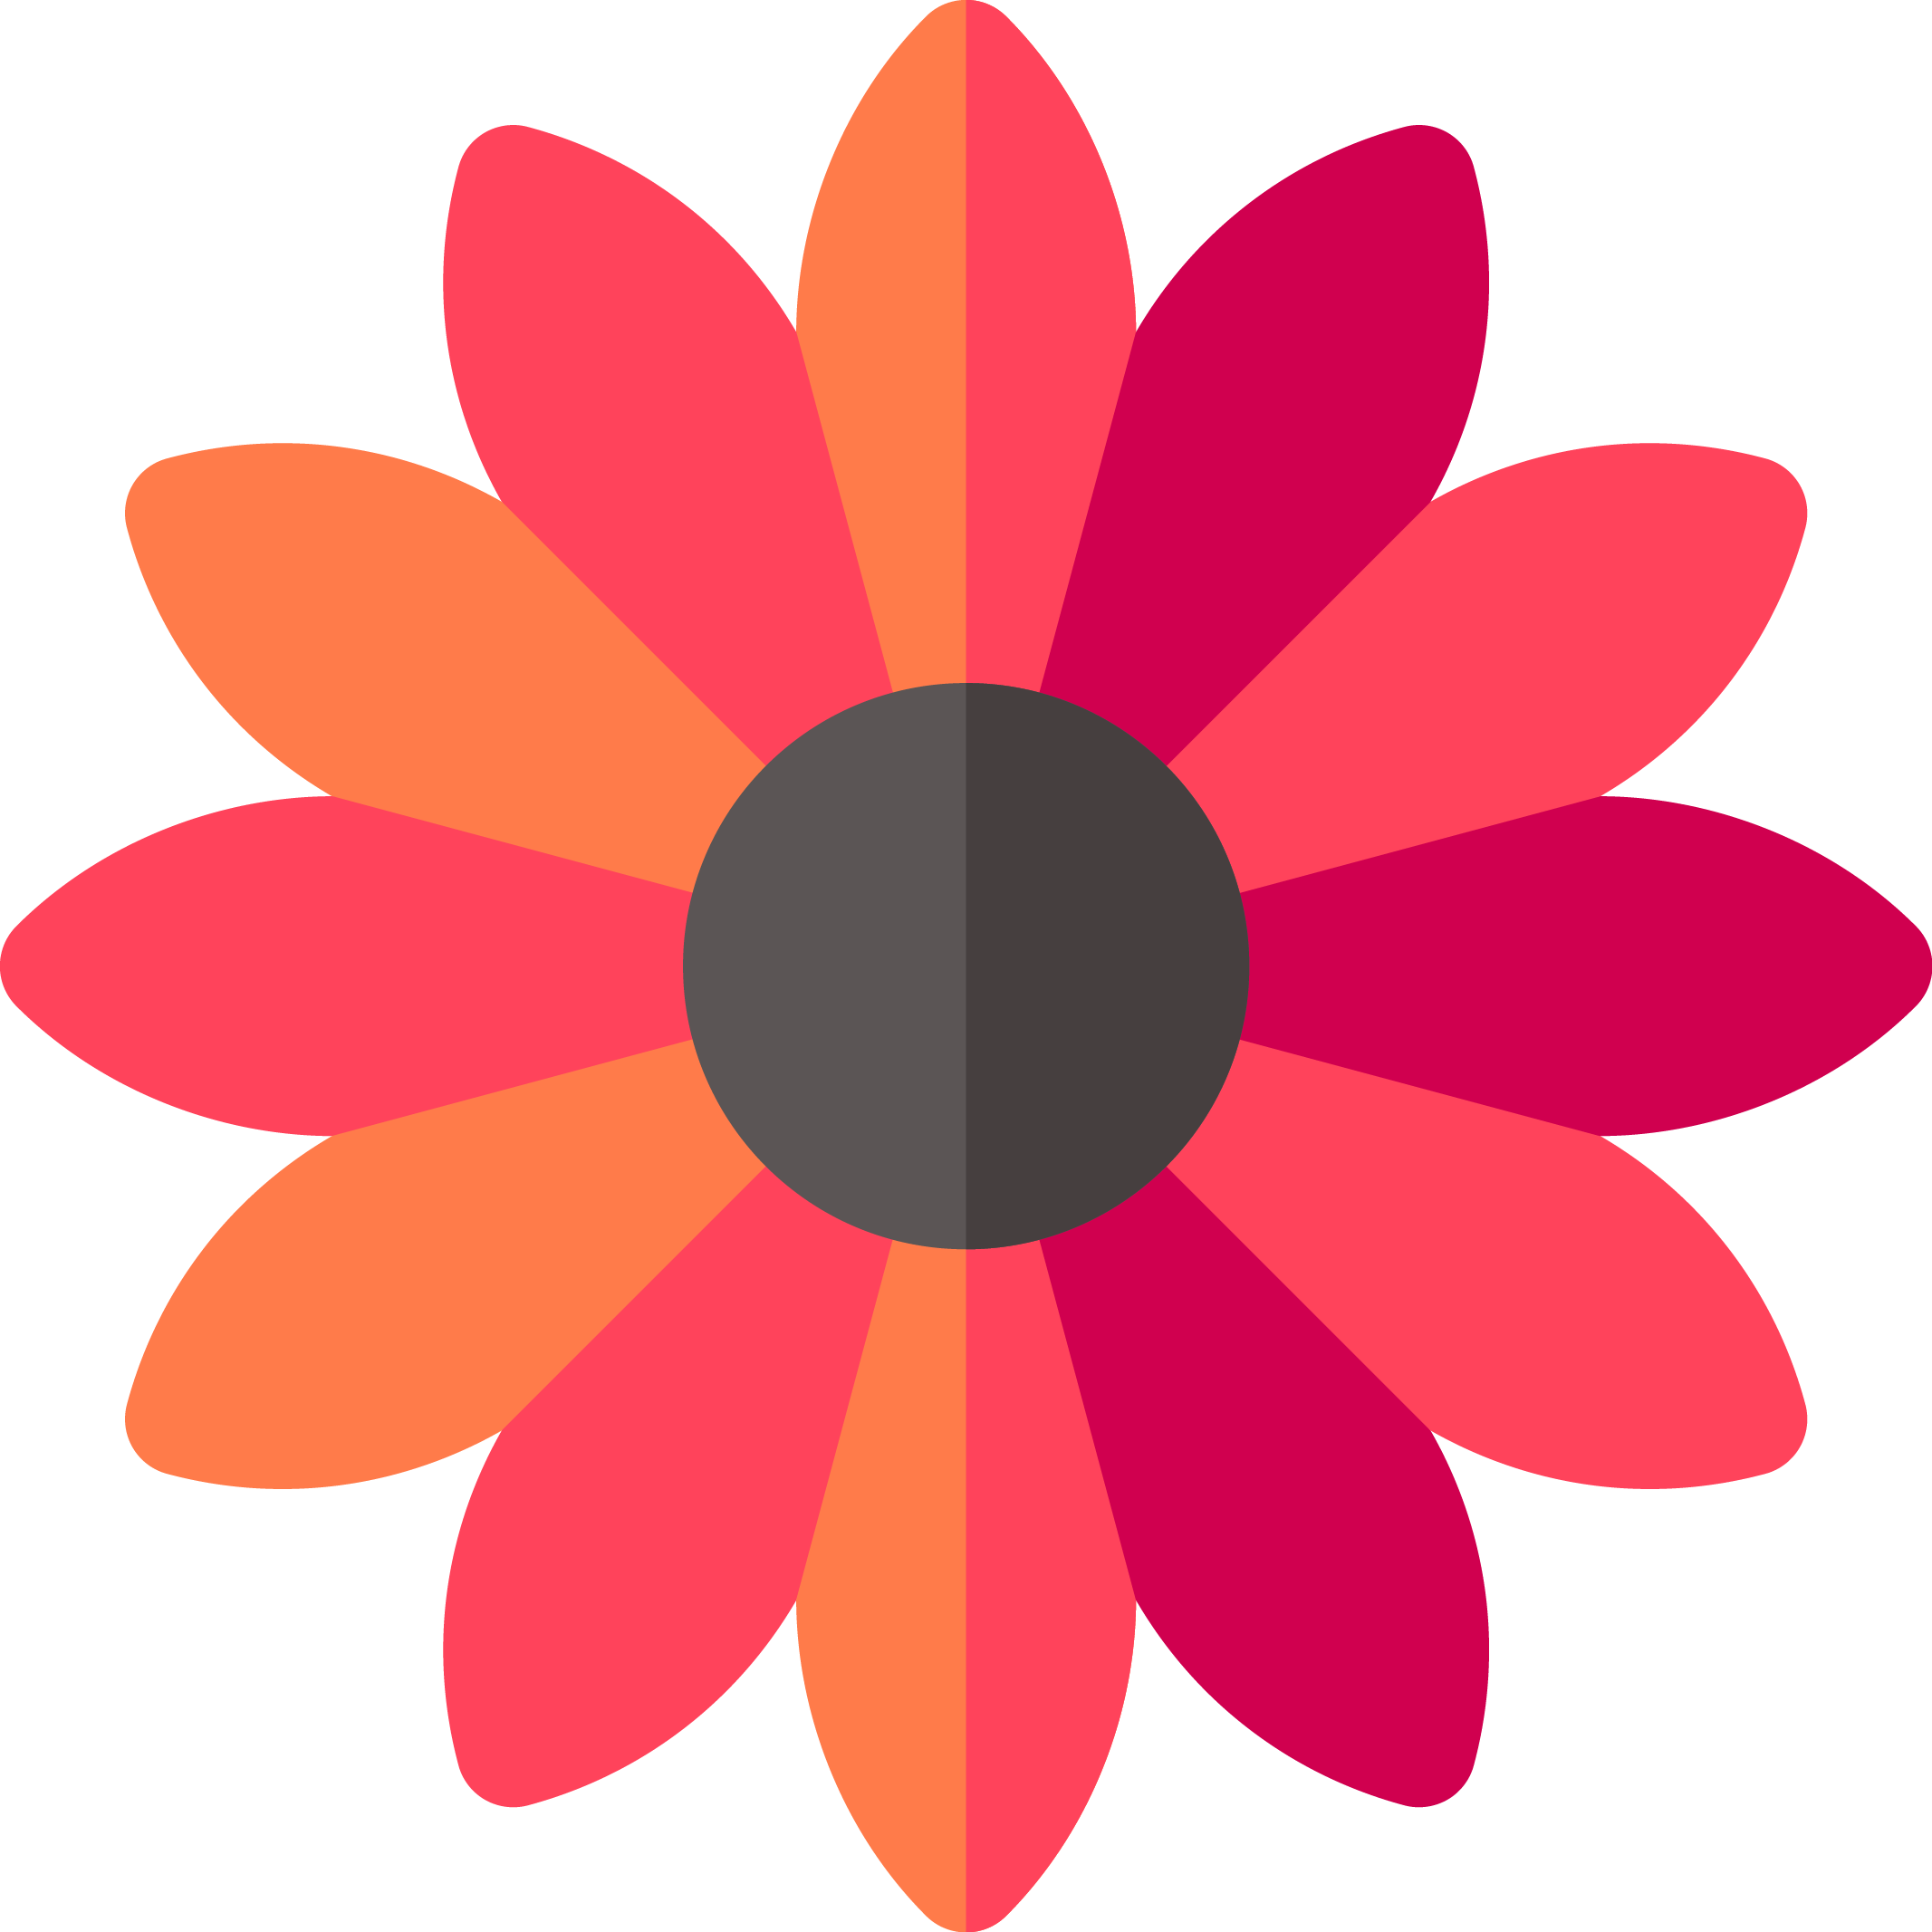 later cancer flower